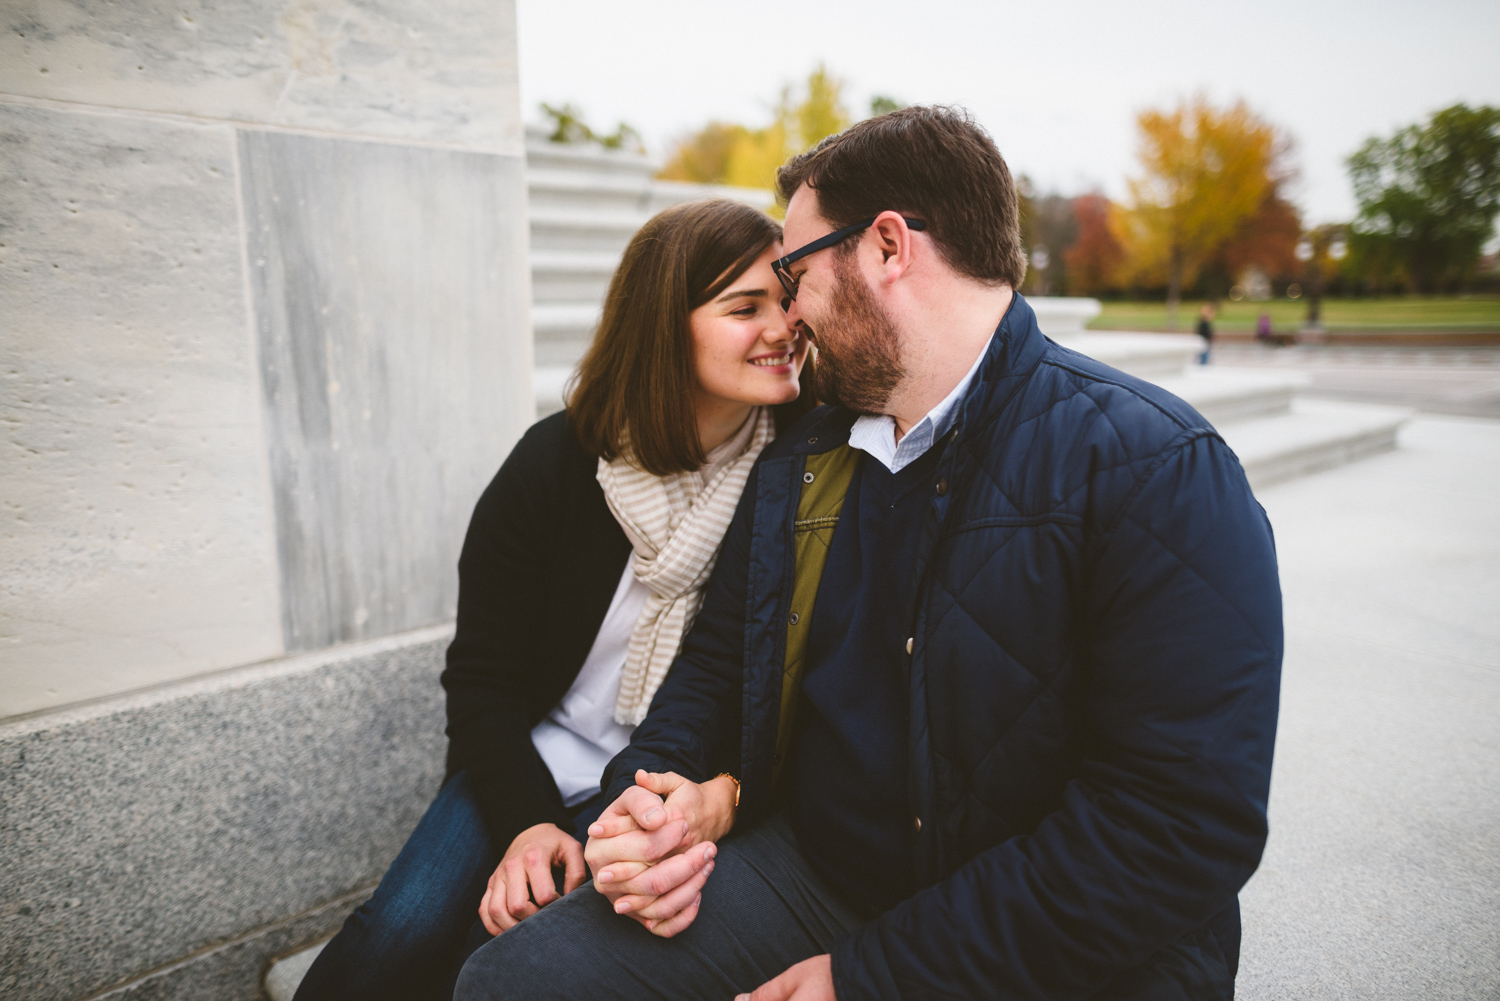 007 - engagement session on the steps of the United States Capitol.jpg